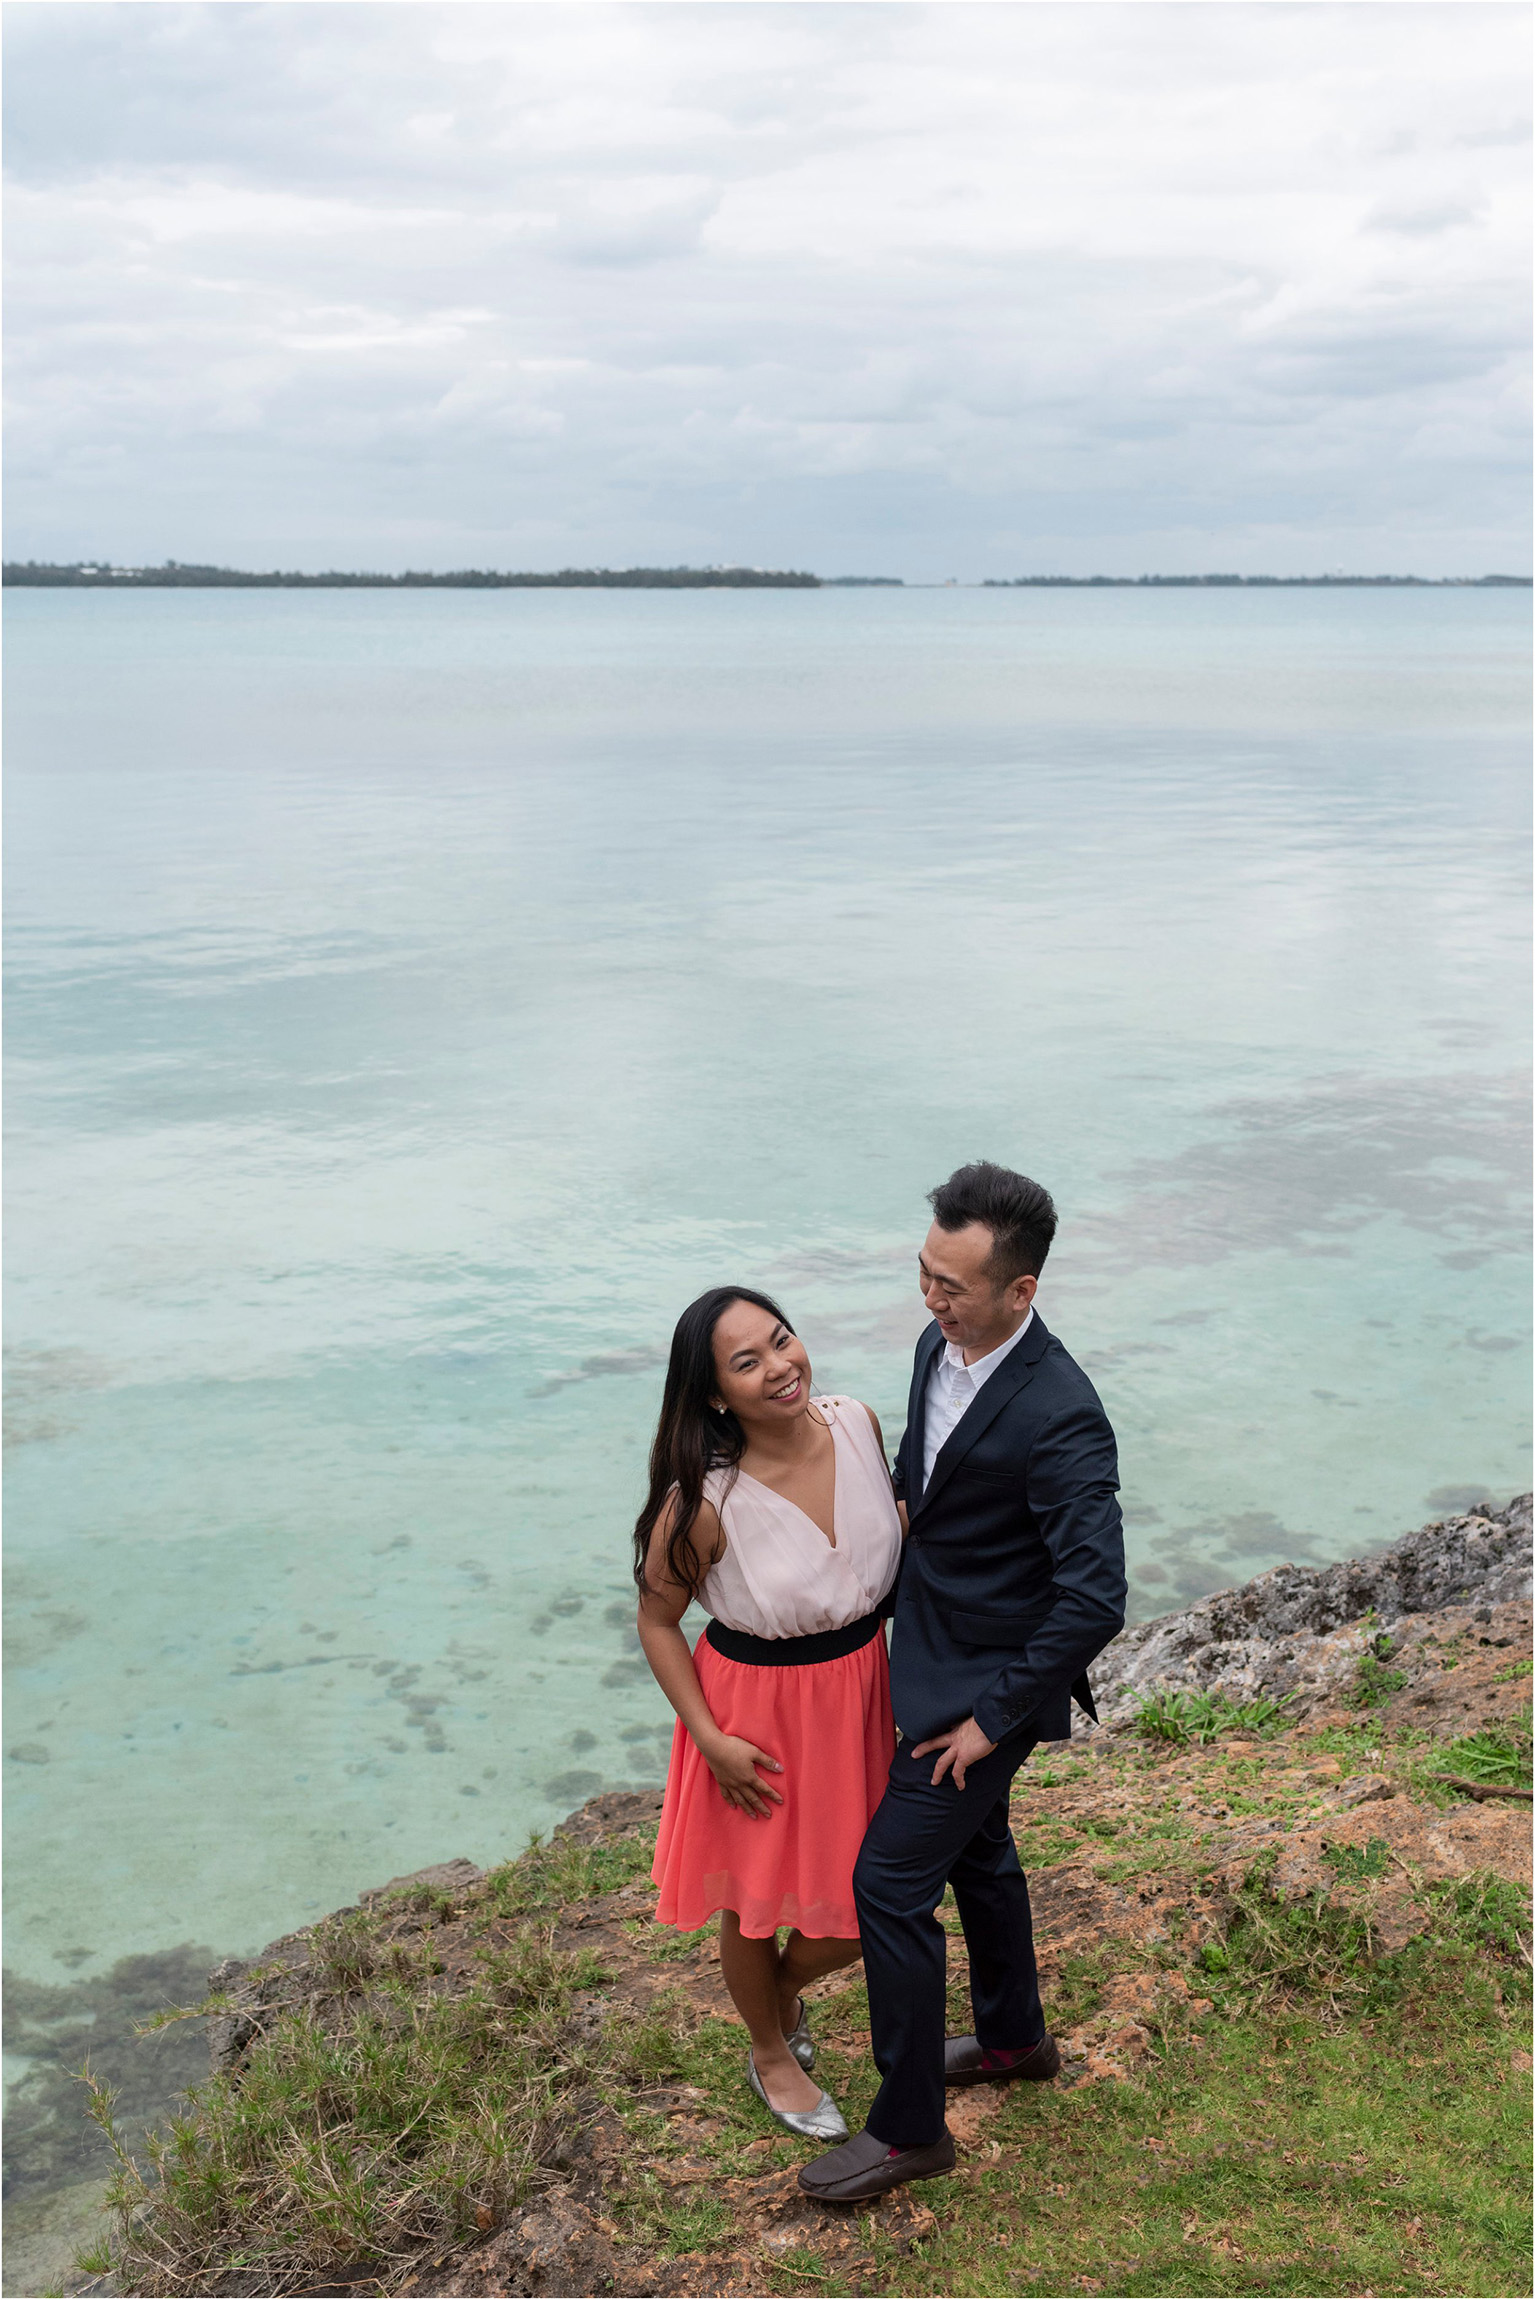 ©FianderFoto_Bermuda Engagement_Photographer_Owen_Chanson_022.jpg